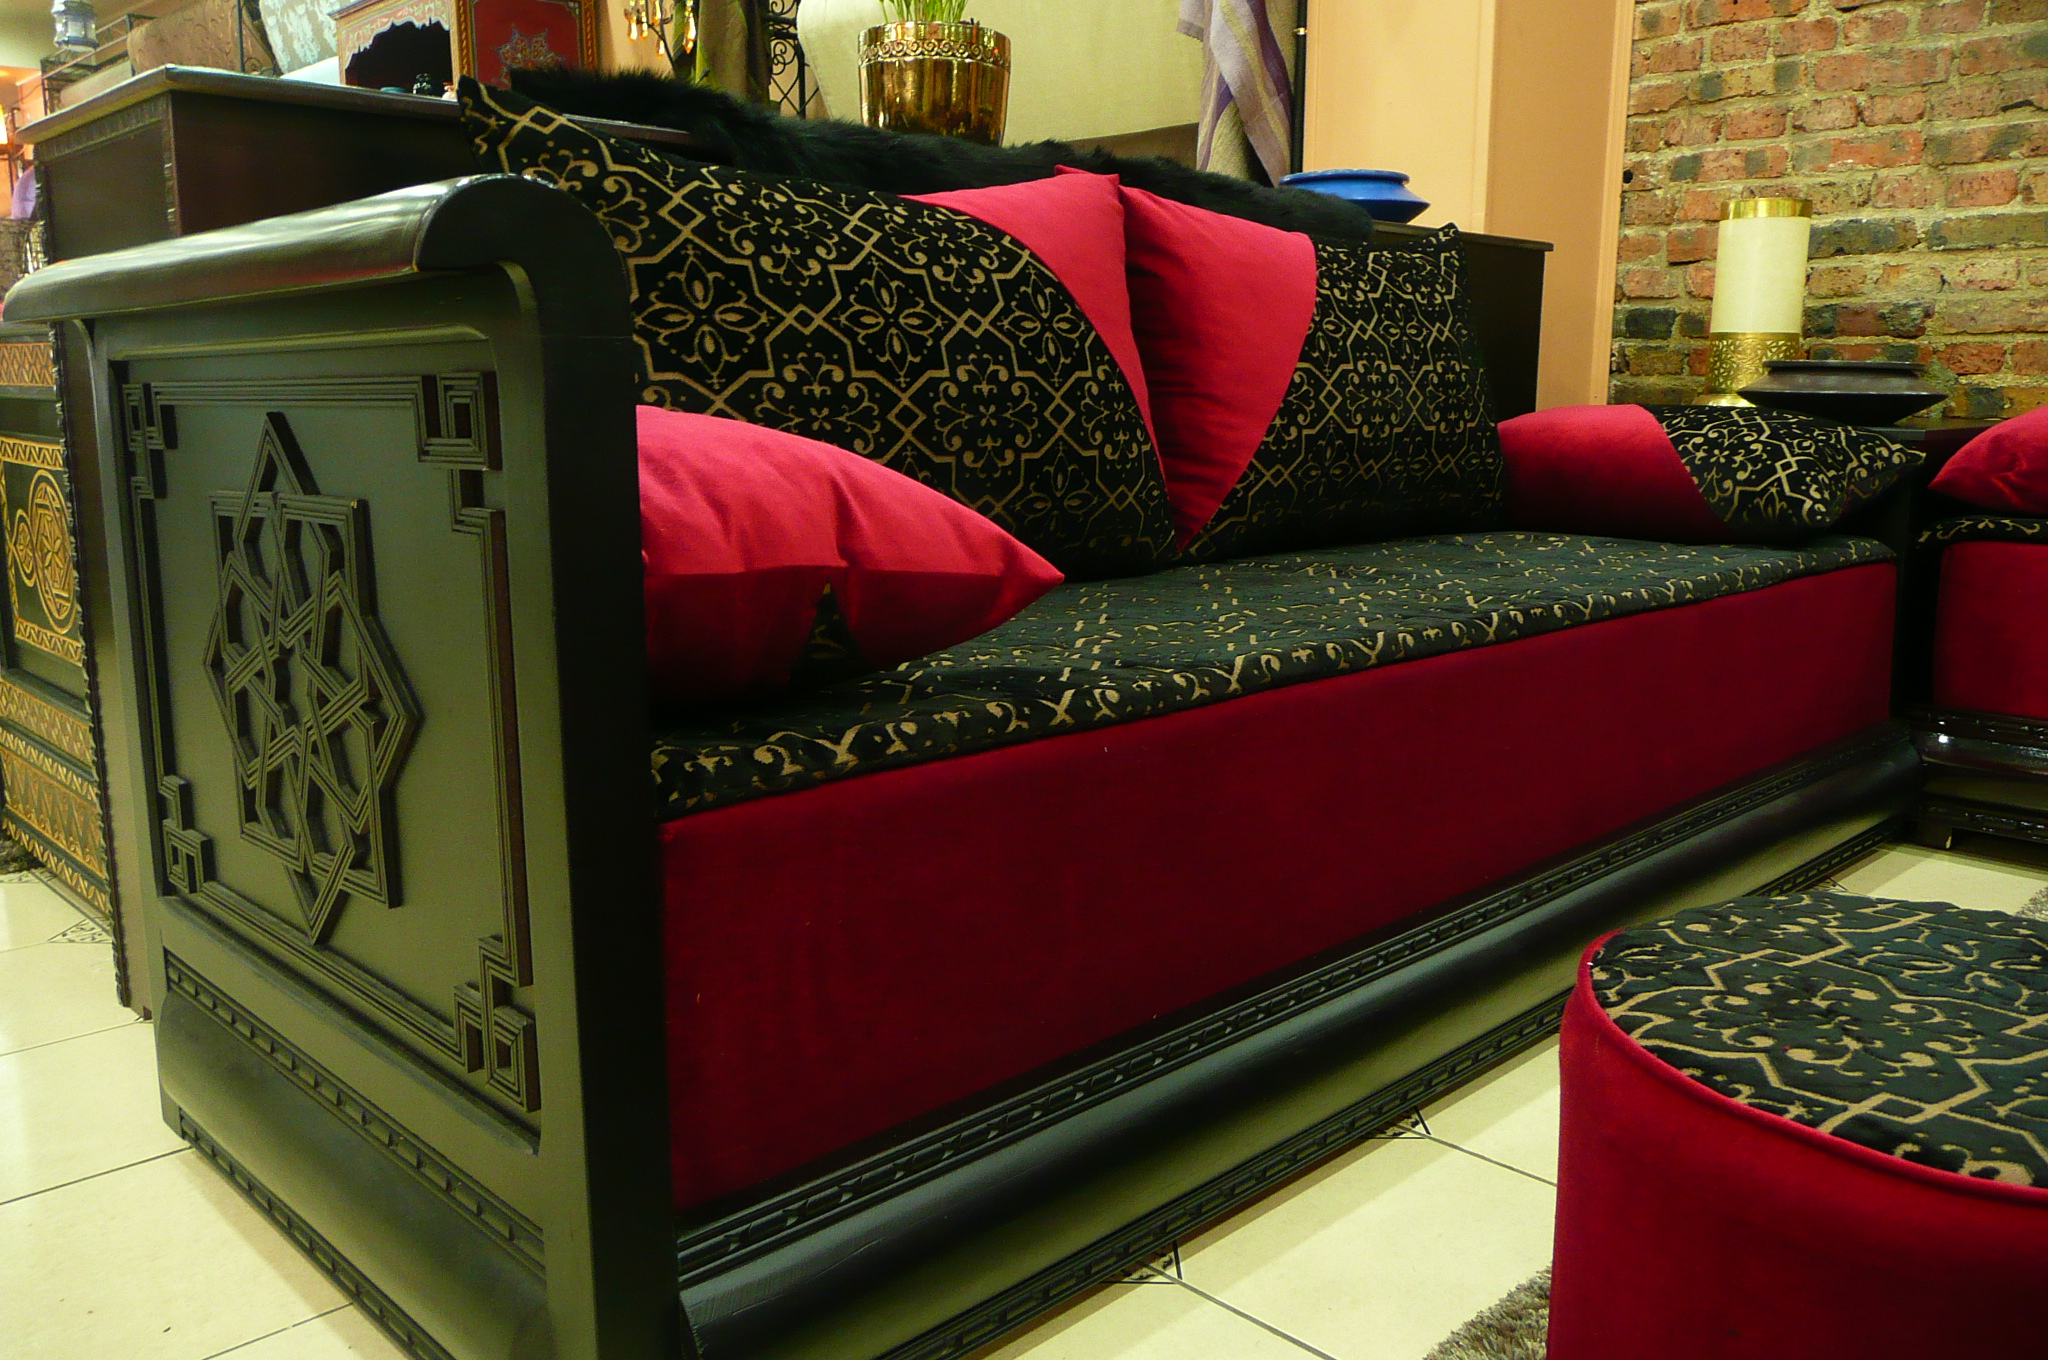 achat de salon marocain en france d co salon marocain. Black Bedroom Furniture Sets. Home Design Ideas